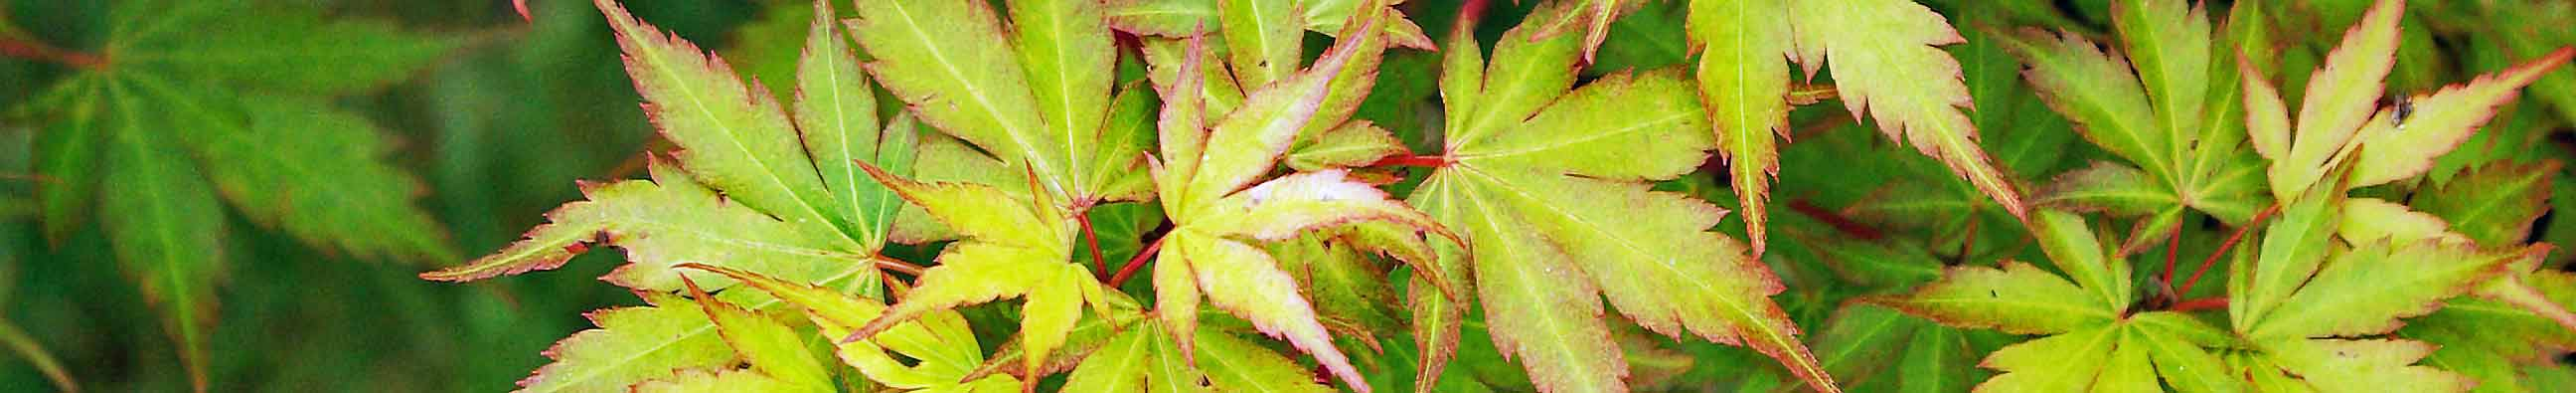 The delicate, deeply lobed, soft yellow-green leaves of Acer palmatum 'Sango-kaku', tinged with pink-red in an early autumn garden border